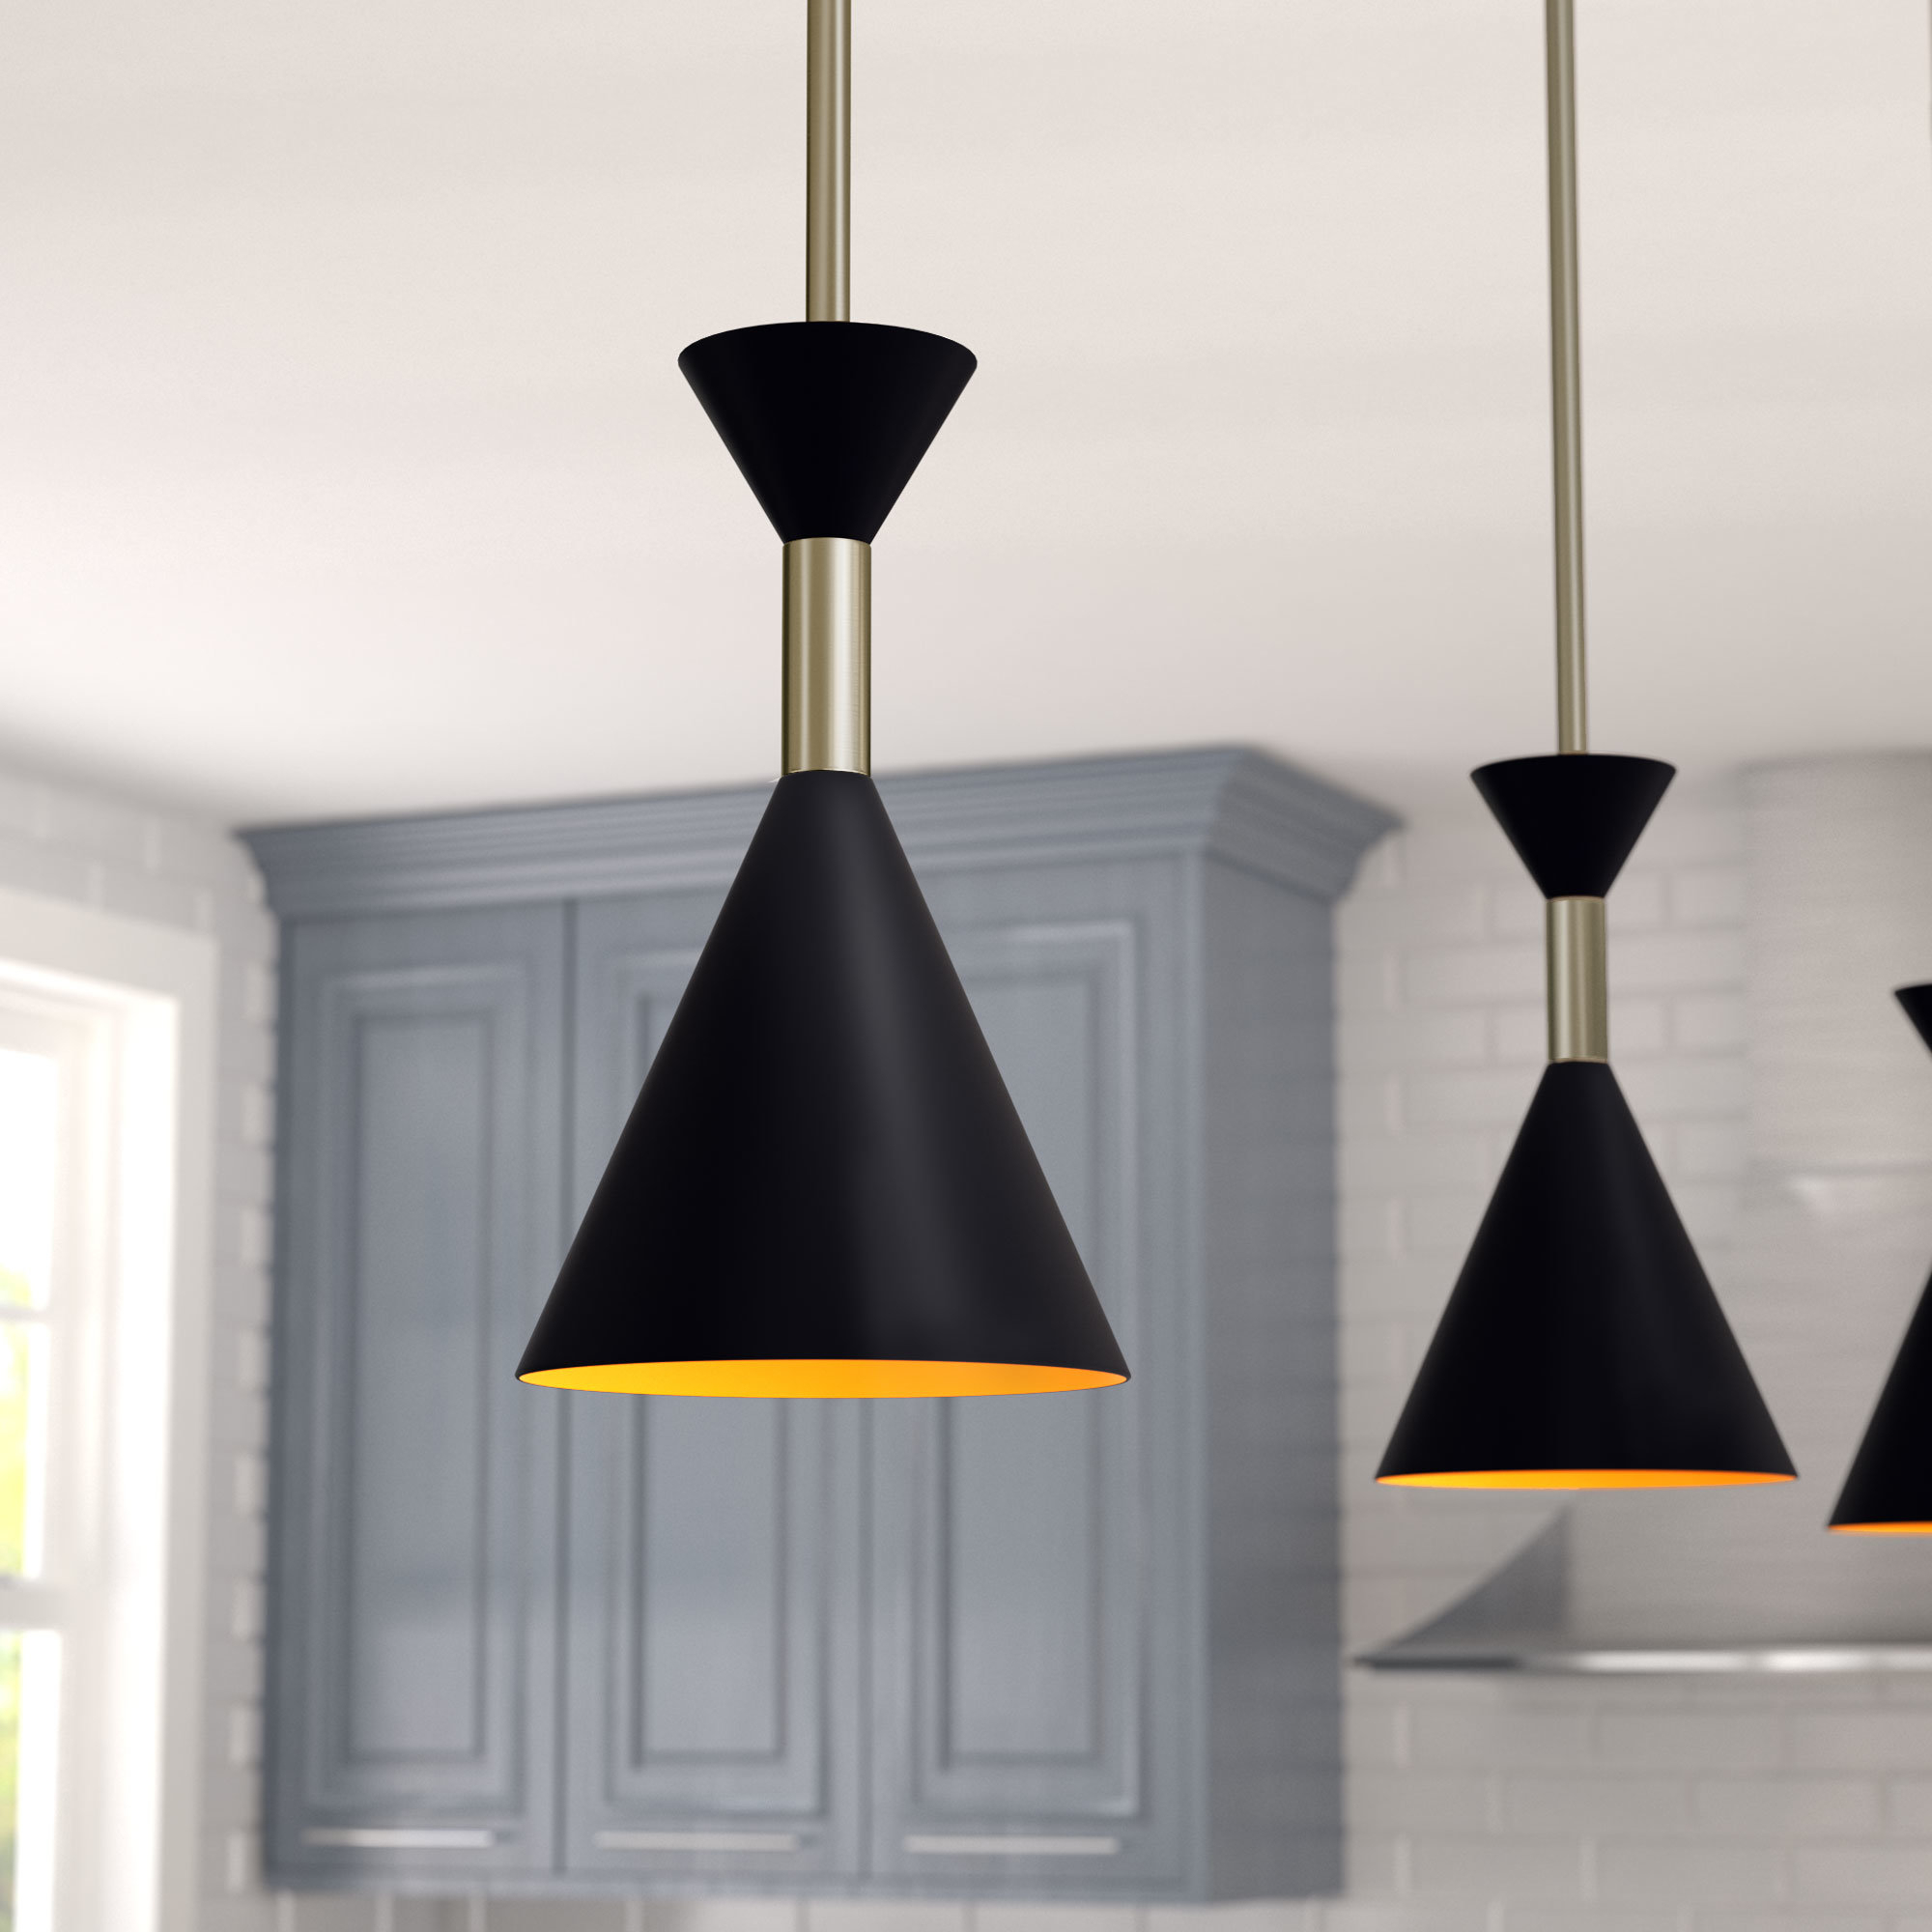 "Black Mini (Less Than 10"" Wide) Pendant Lighting You'll Love With Ammerman 1 Light Cone Pendants (Image 8 of 30)"